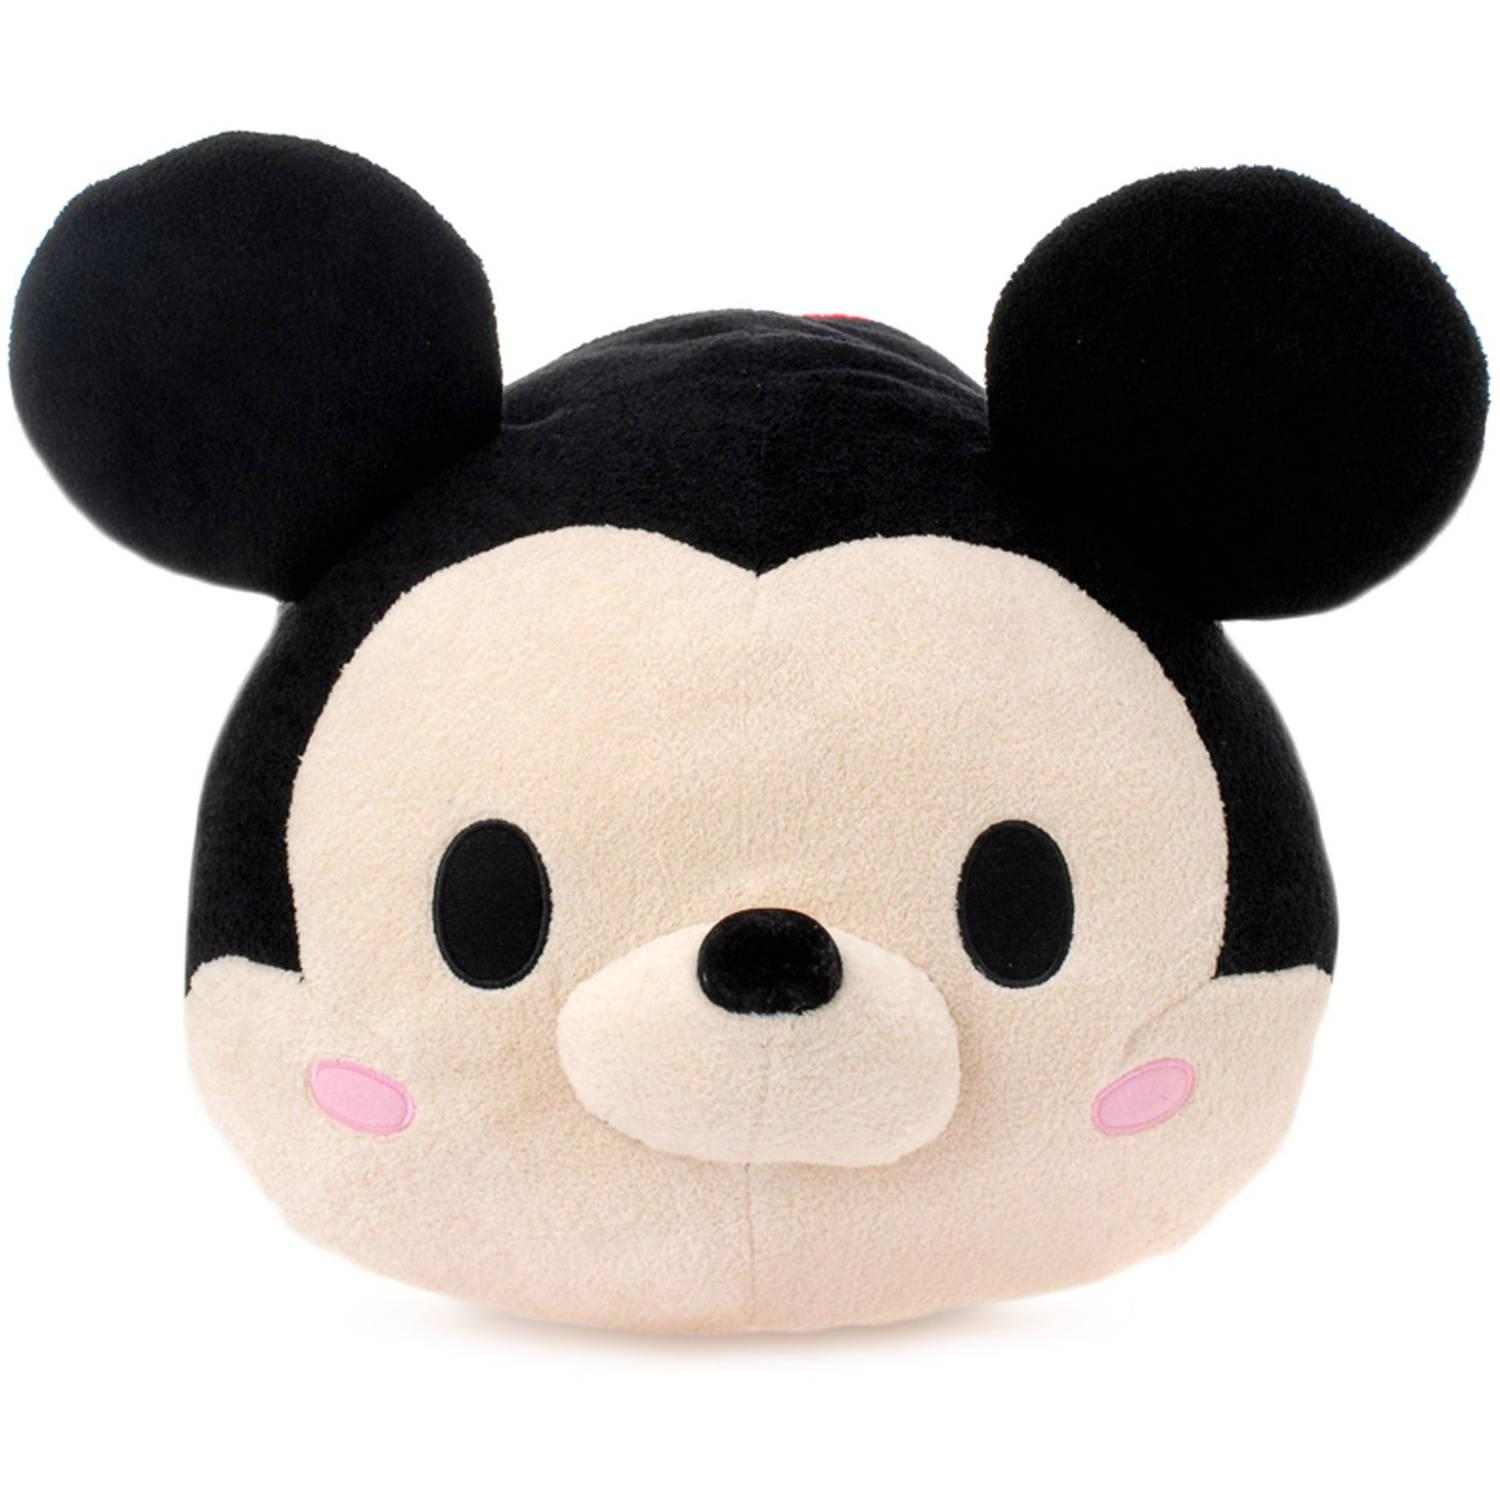 Disney Tsum Tsum Mickey Mouse 12 Plush